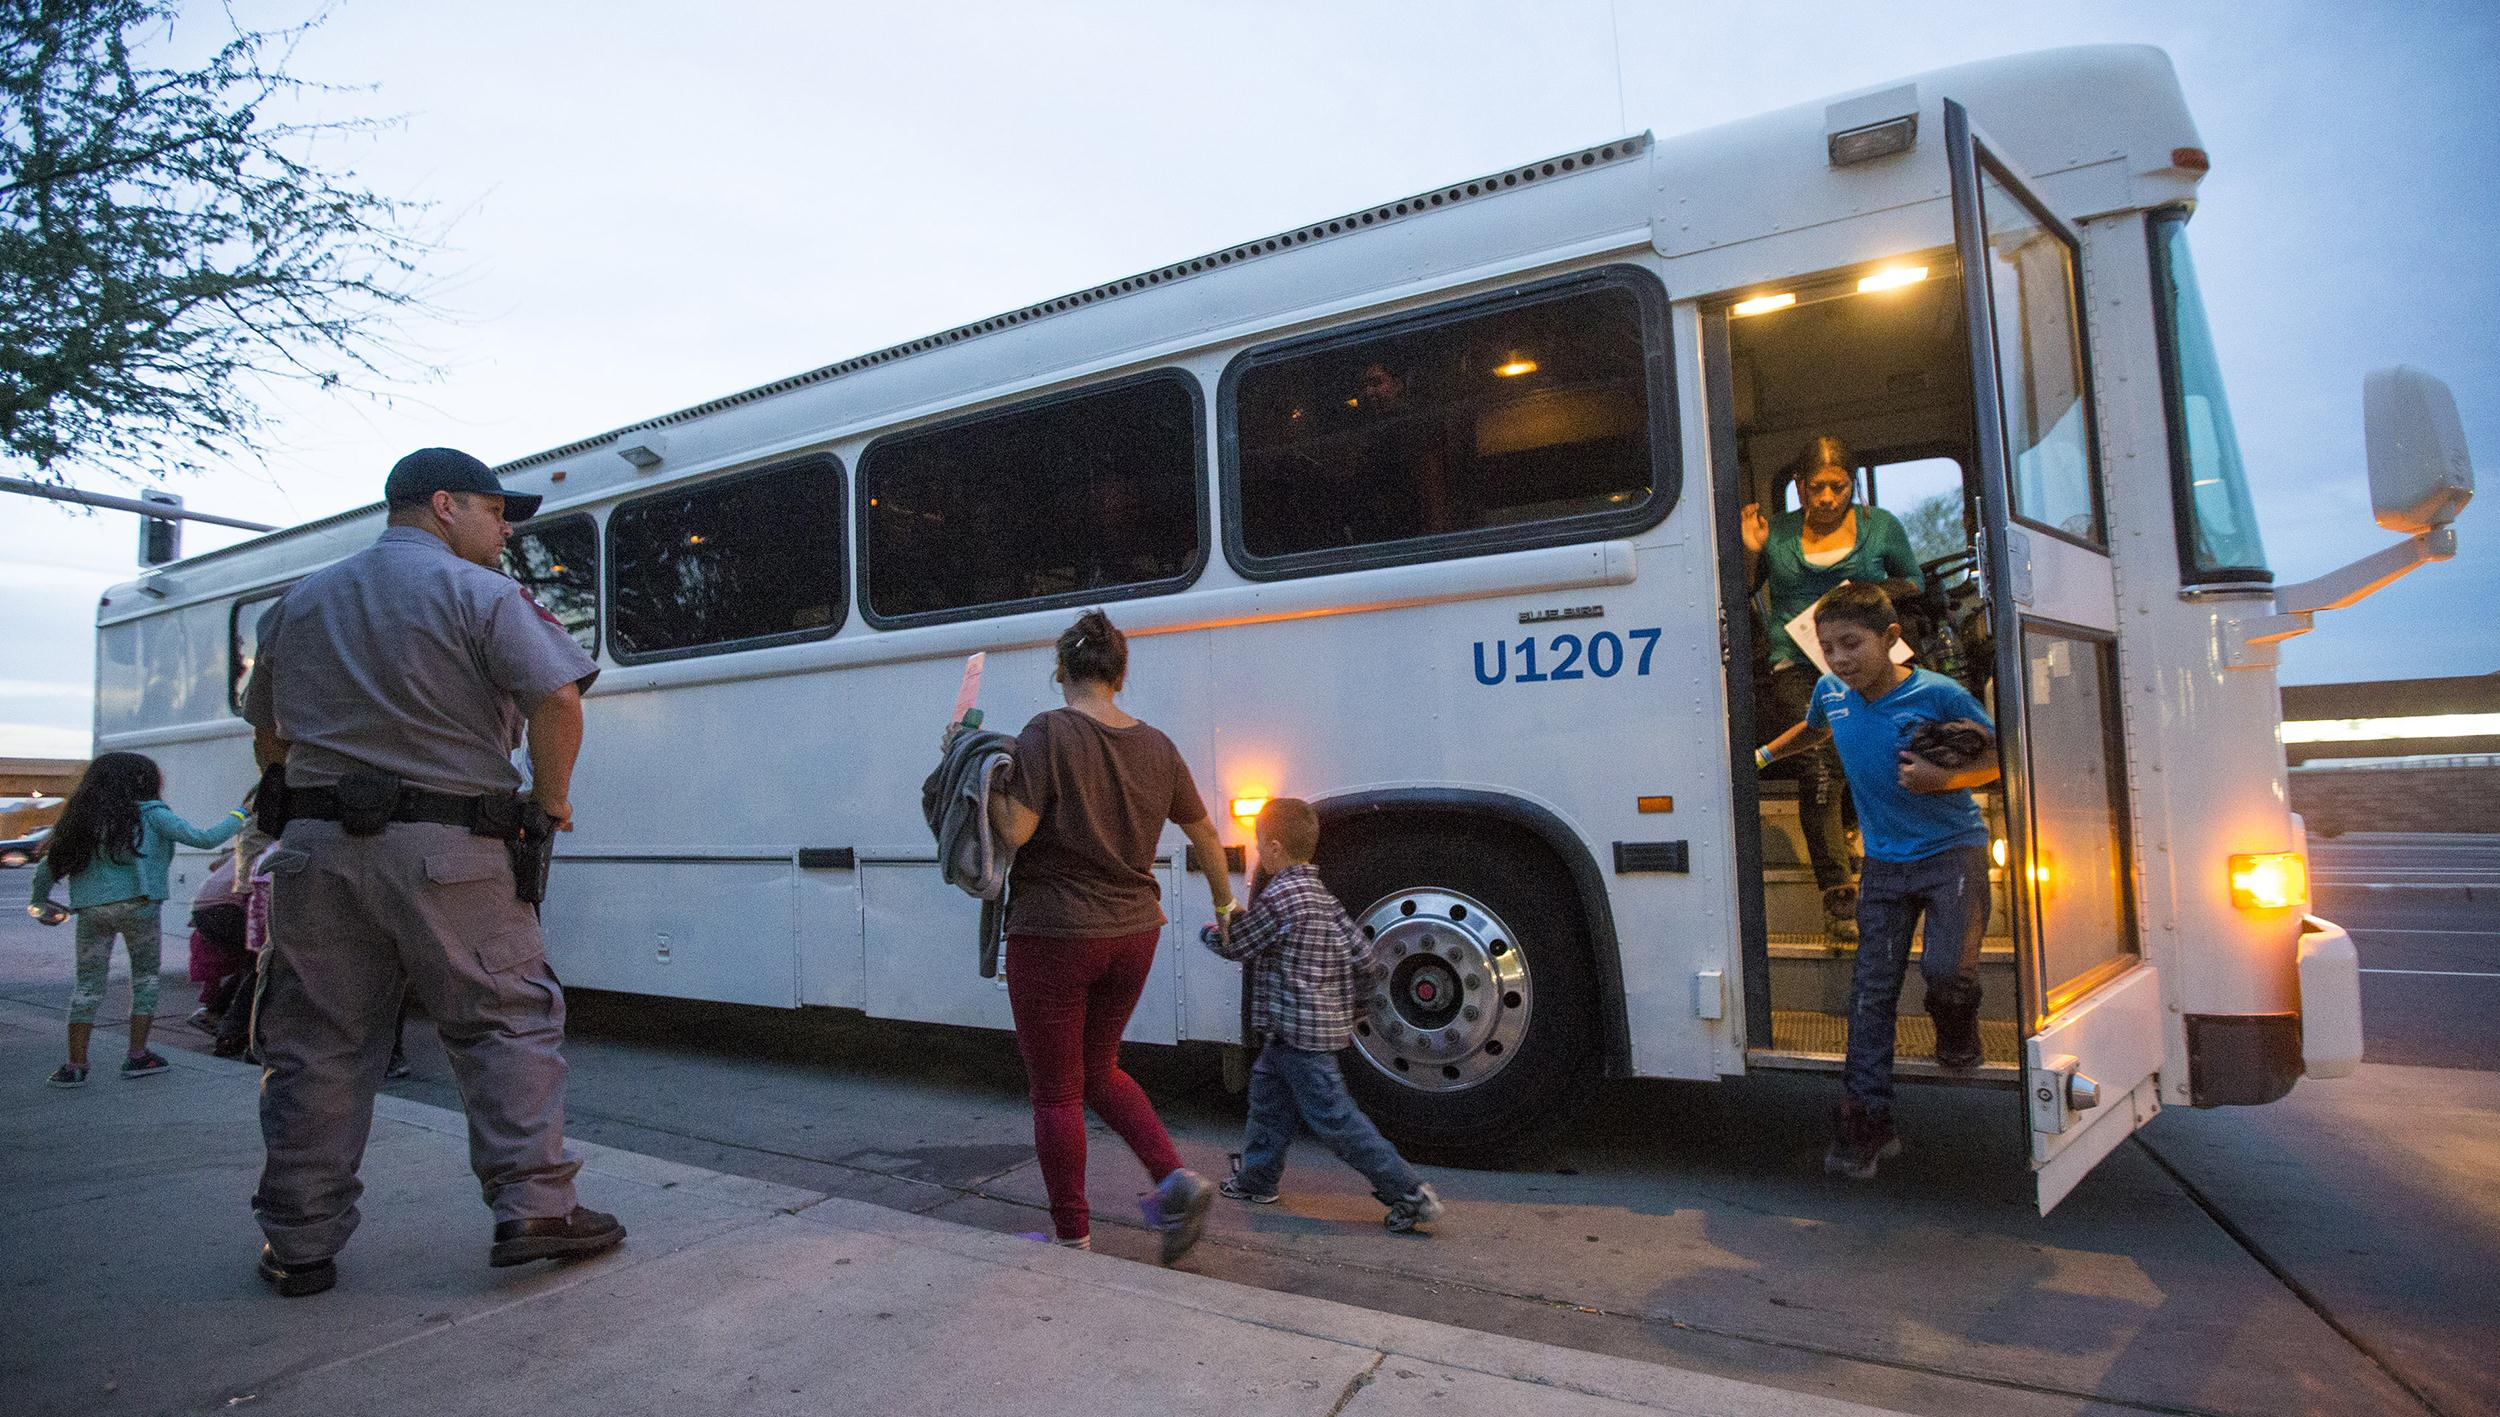 Image: Migrants are released from ICE custody at a Greyhound Bus station in Phoenix, May 28